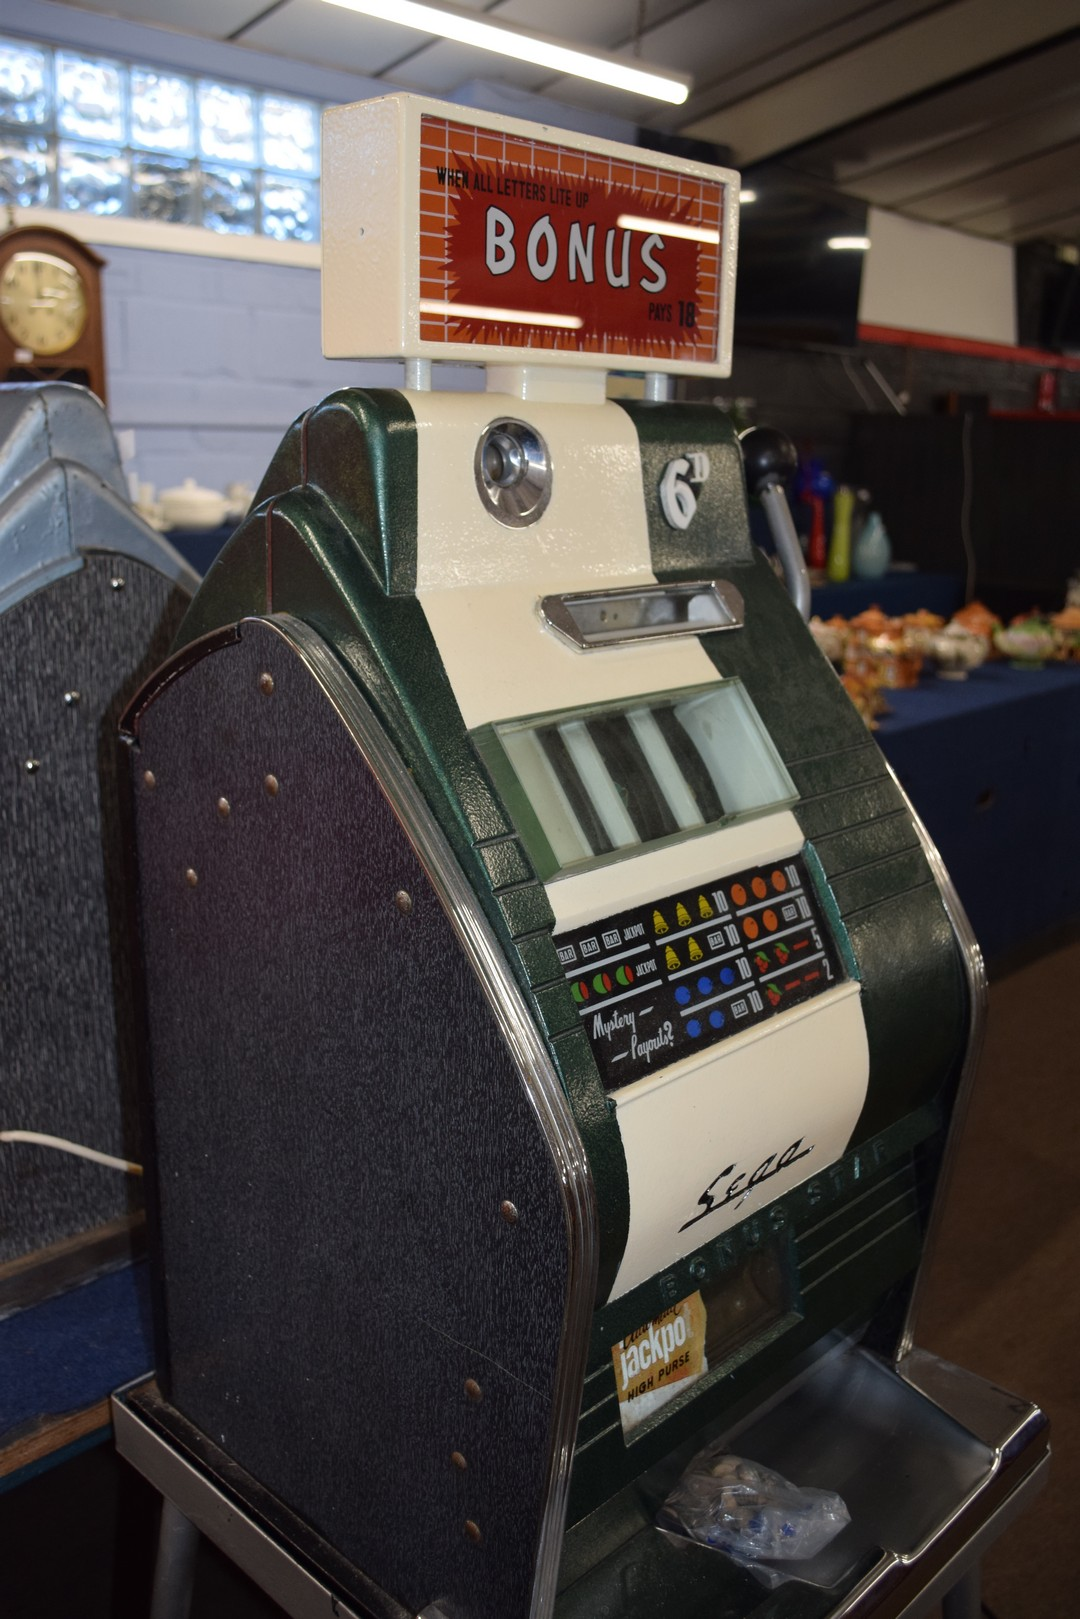 Bonus Star by Sega one-armed bandit fruit machine with electric light-up, approx 80cm high, together - Image 8 of 11